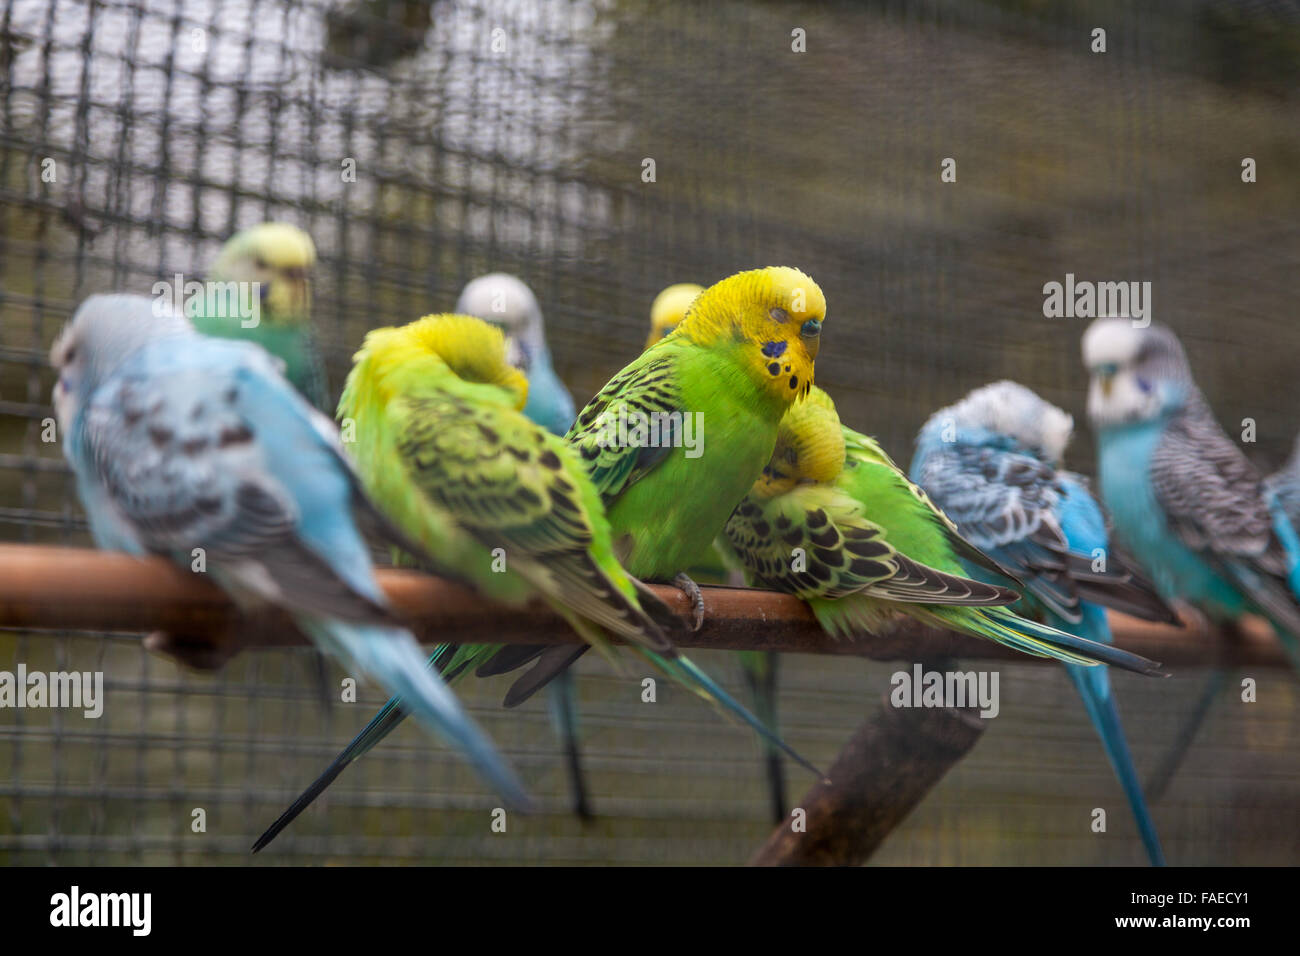 Budgie birds all in a row tucking in for the night - Stock Image